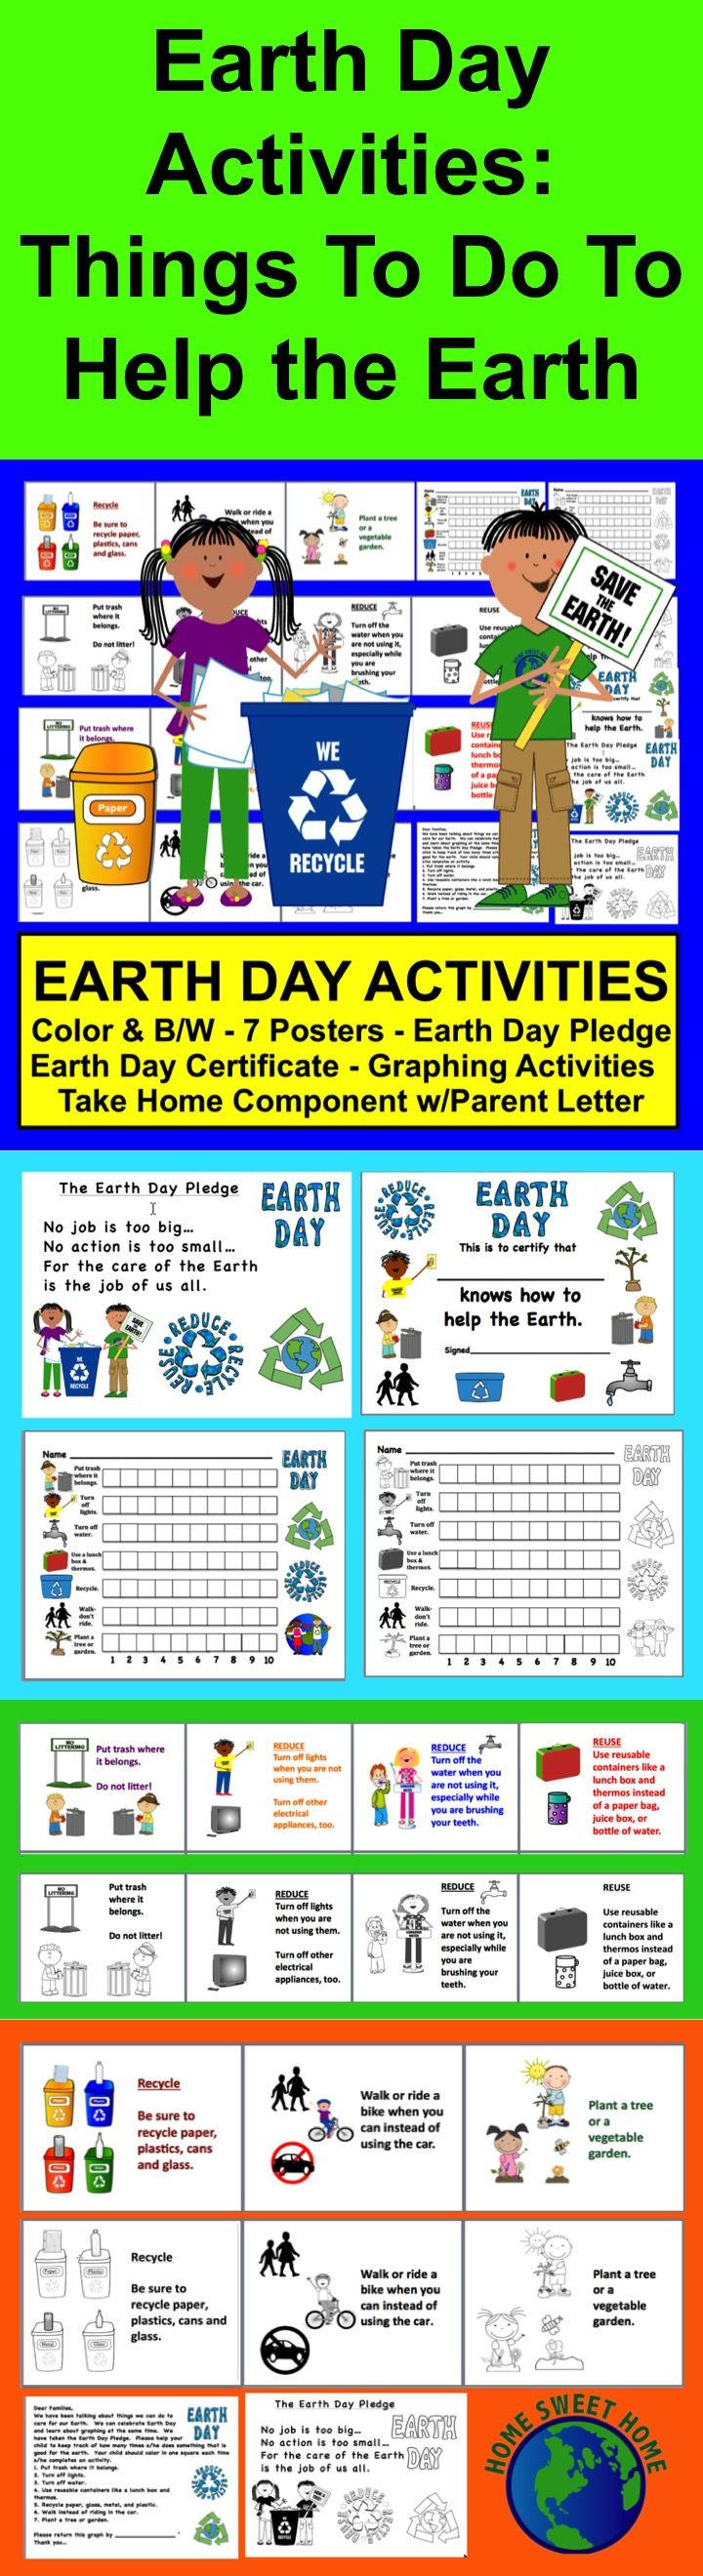 Things to Do to Help the Earth:  Color & BW - 7 Earth Day Posters, Earth Day Pledge, Earth Day Certificate, Graphing, Take Home Components